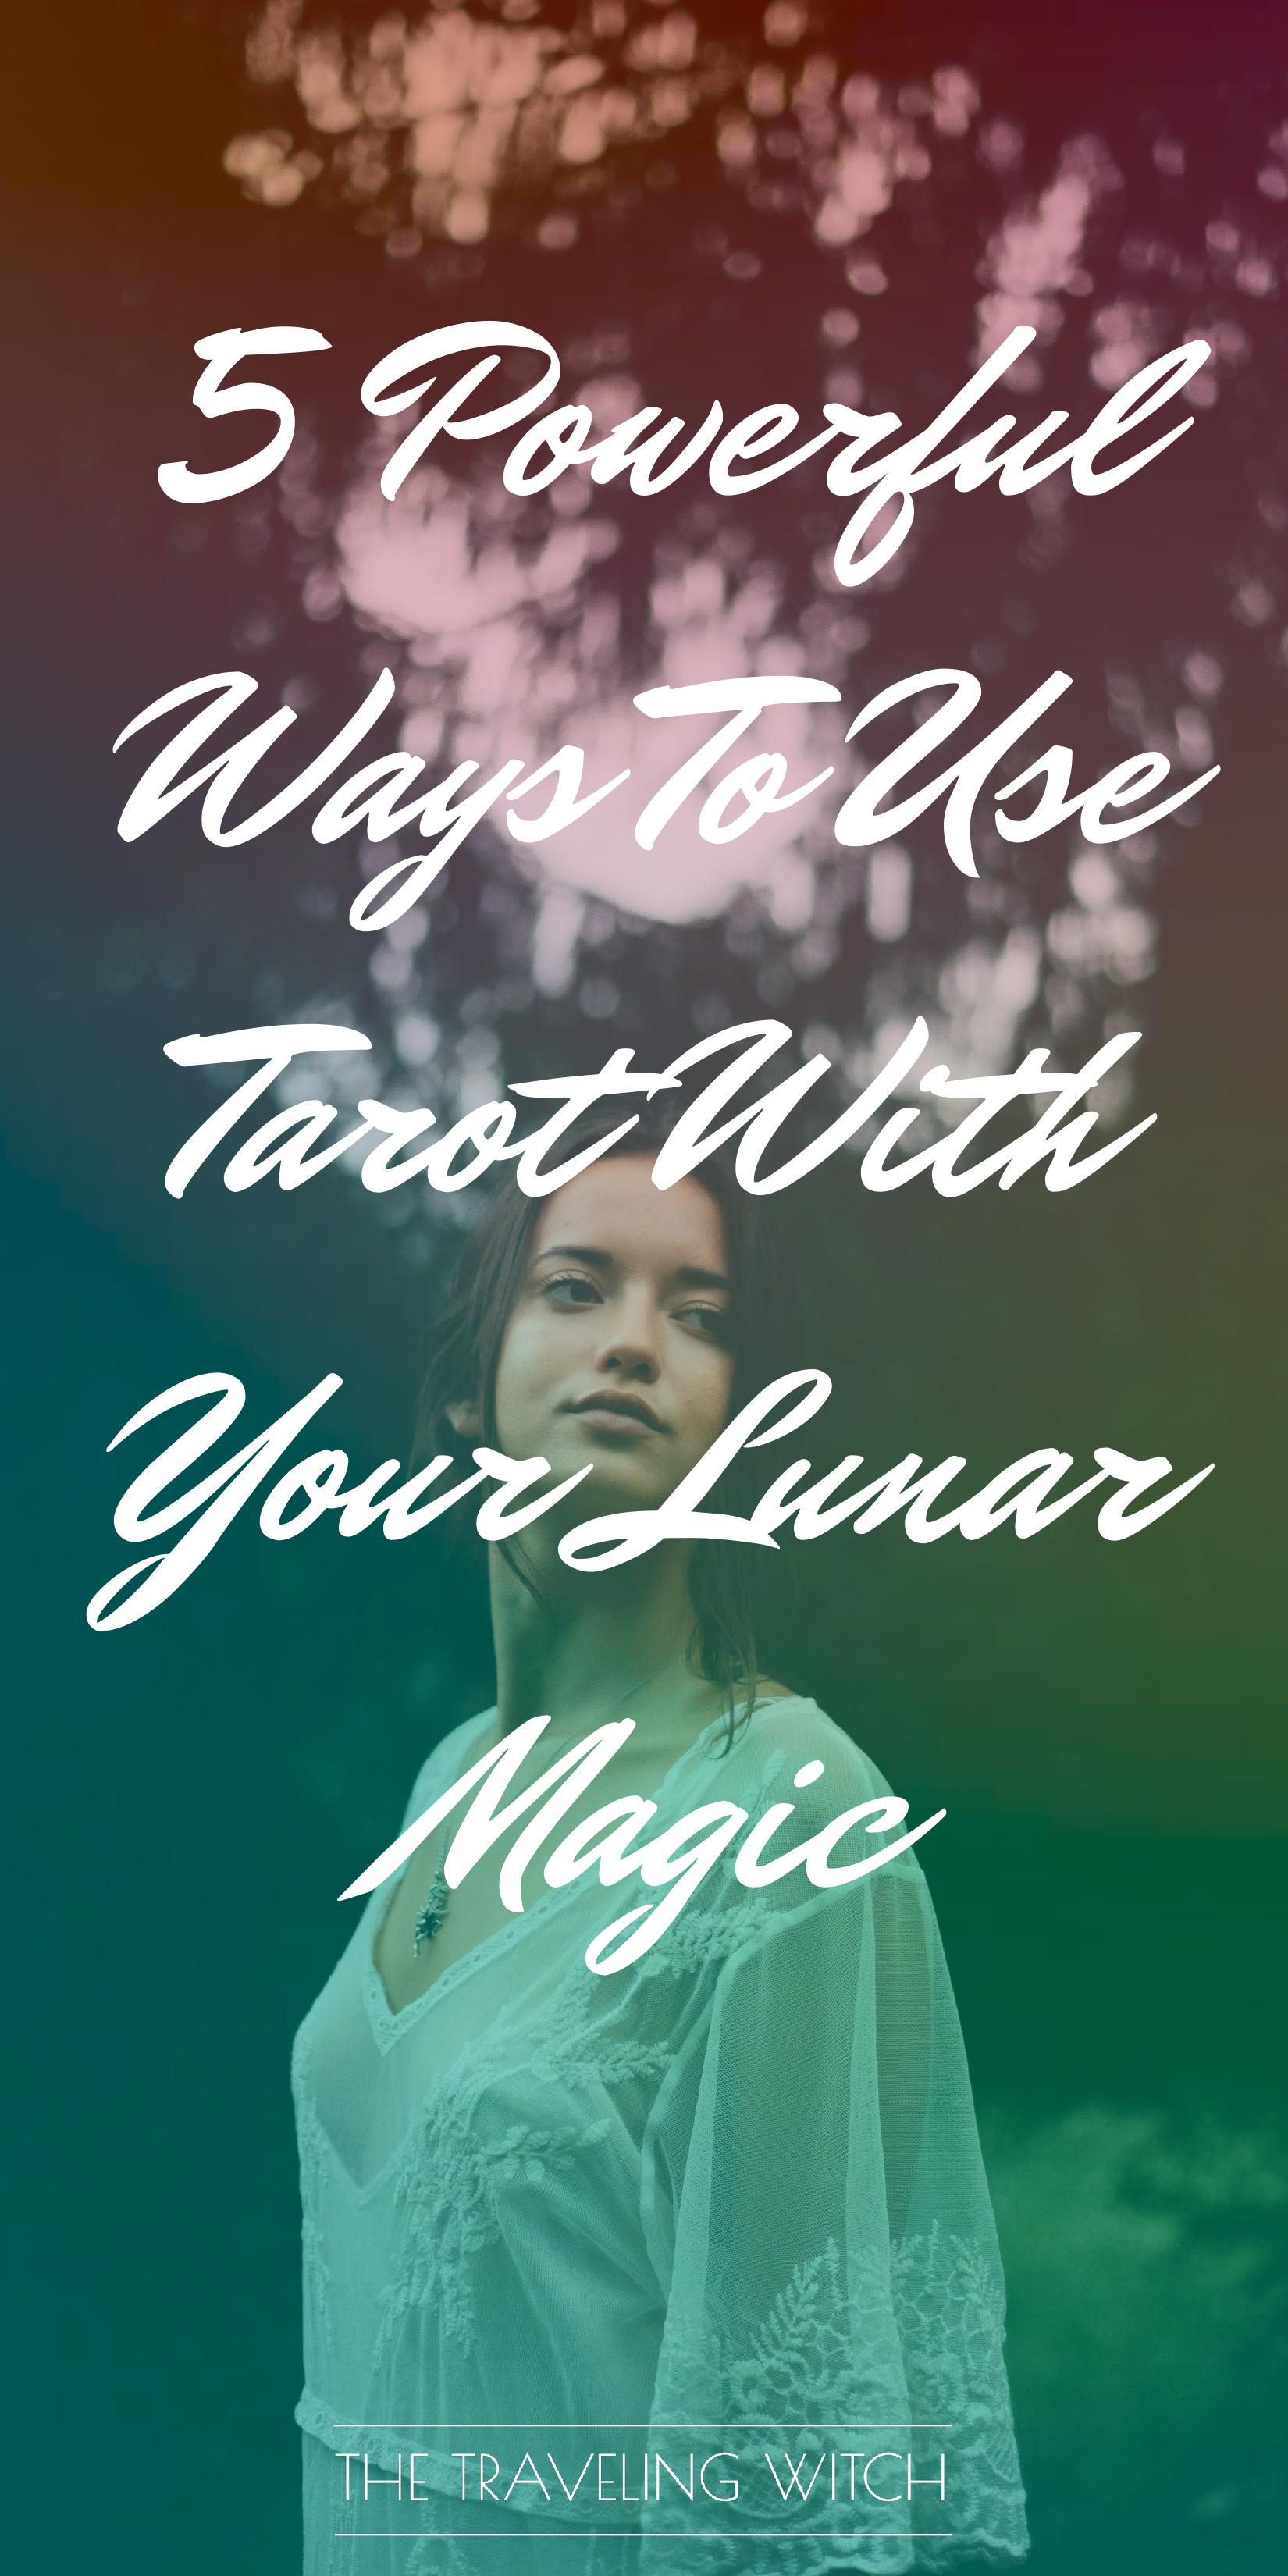 5 Powerful Ways To Use Tarot With Your Lunar Magic by The Traveling Witch